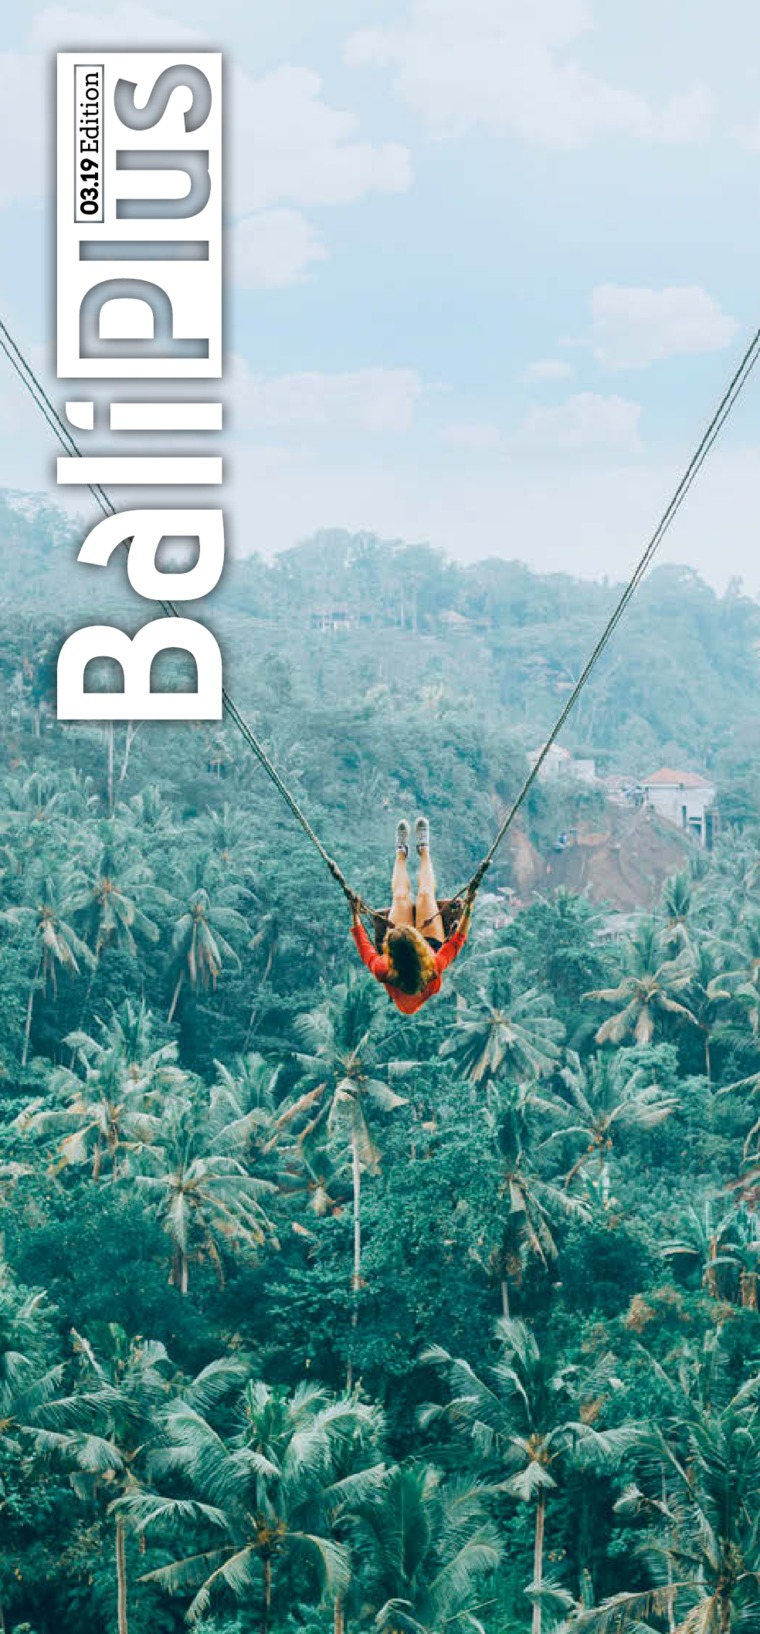 BALI PLUS Digital Magazine March 2019